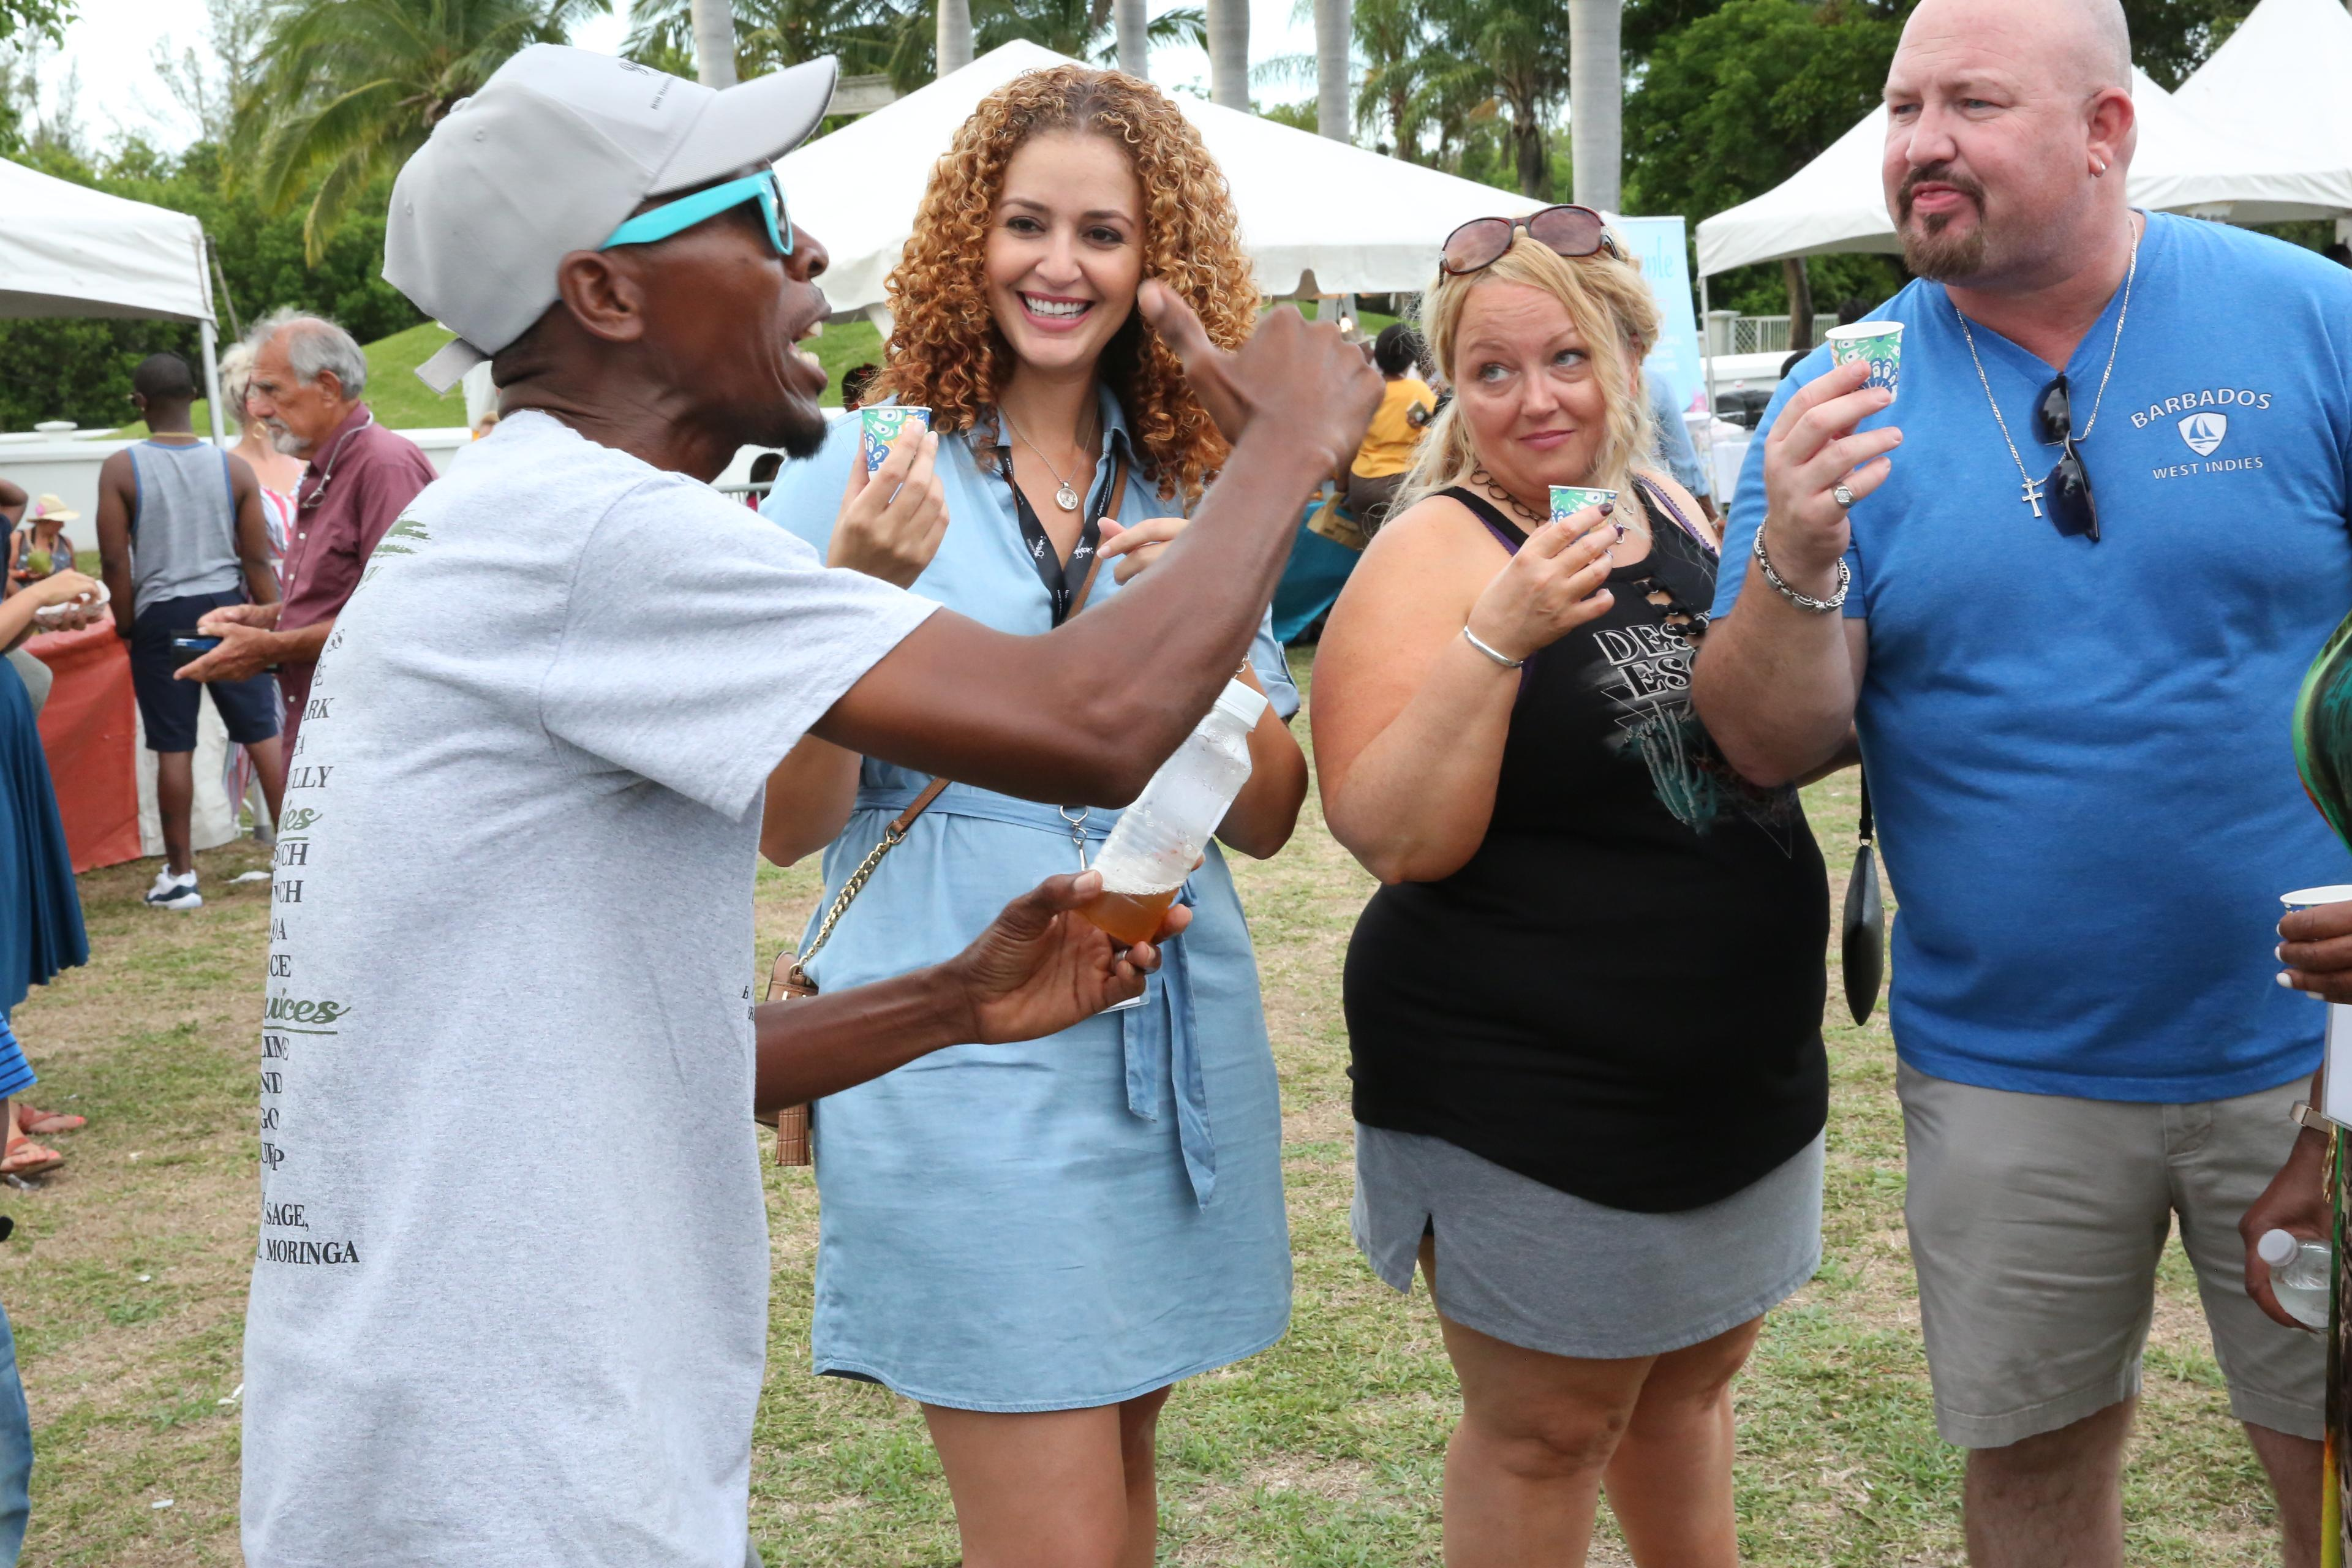 "Fenrick Russell "" Mr. Bush Tea"" shows a variety of teas ay the Goombay Summer Festival  to travel agents Steven Troy Yarborough and Amy Yarborough. Tina Lee BTO Florida looks on."